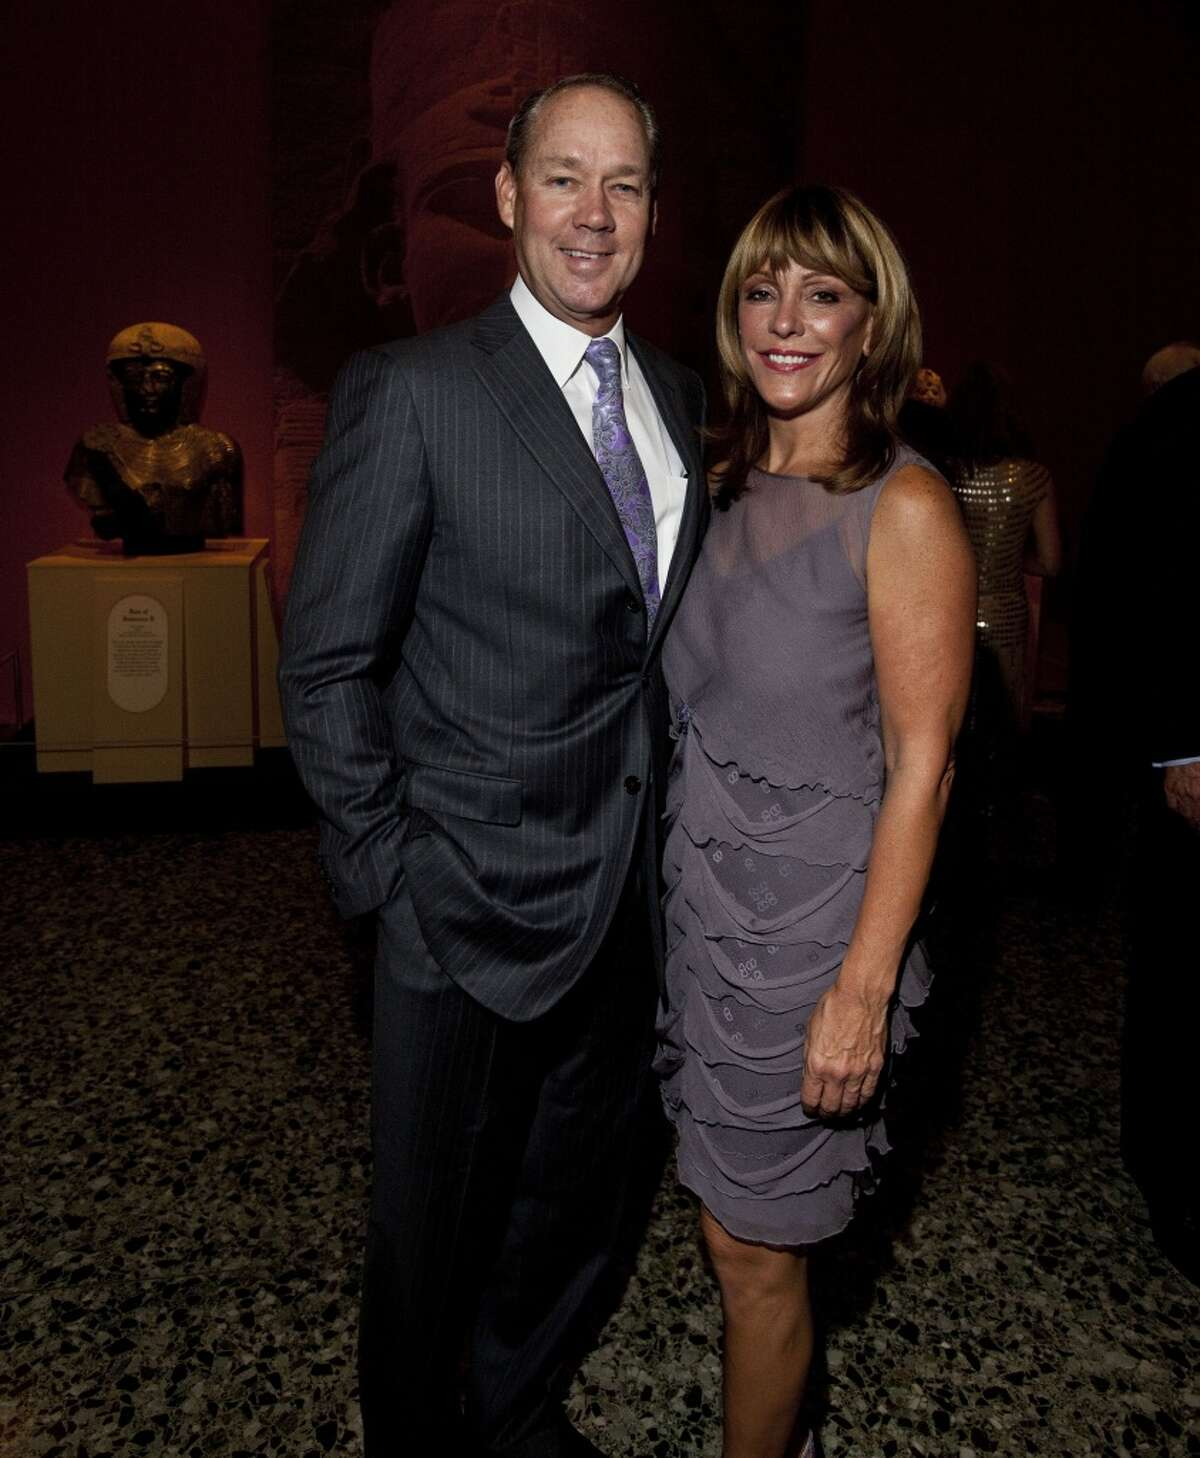 JimCraneand Franci Neely Astros owner Jim Crane and Franci Neely, a Houston philanthropist, finalized their divorce after 21 years of marriage. The late 2014 settlement requiredCrane to pay Neely $30 million.